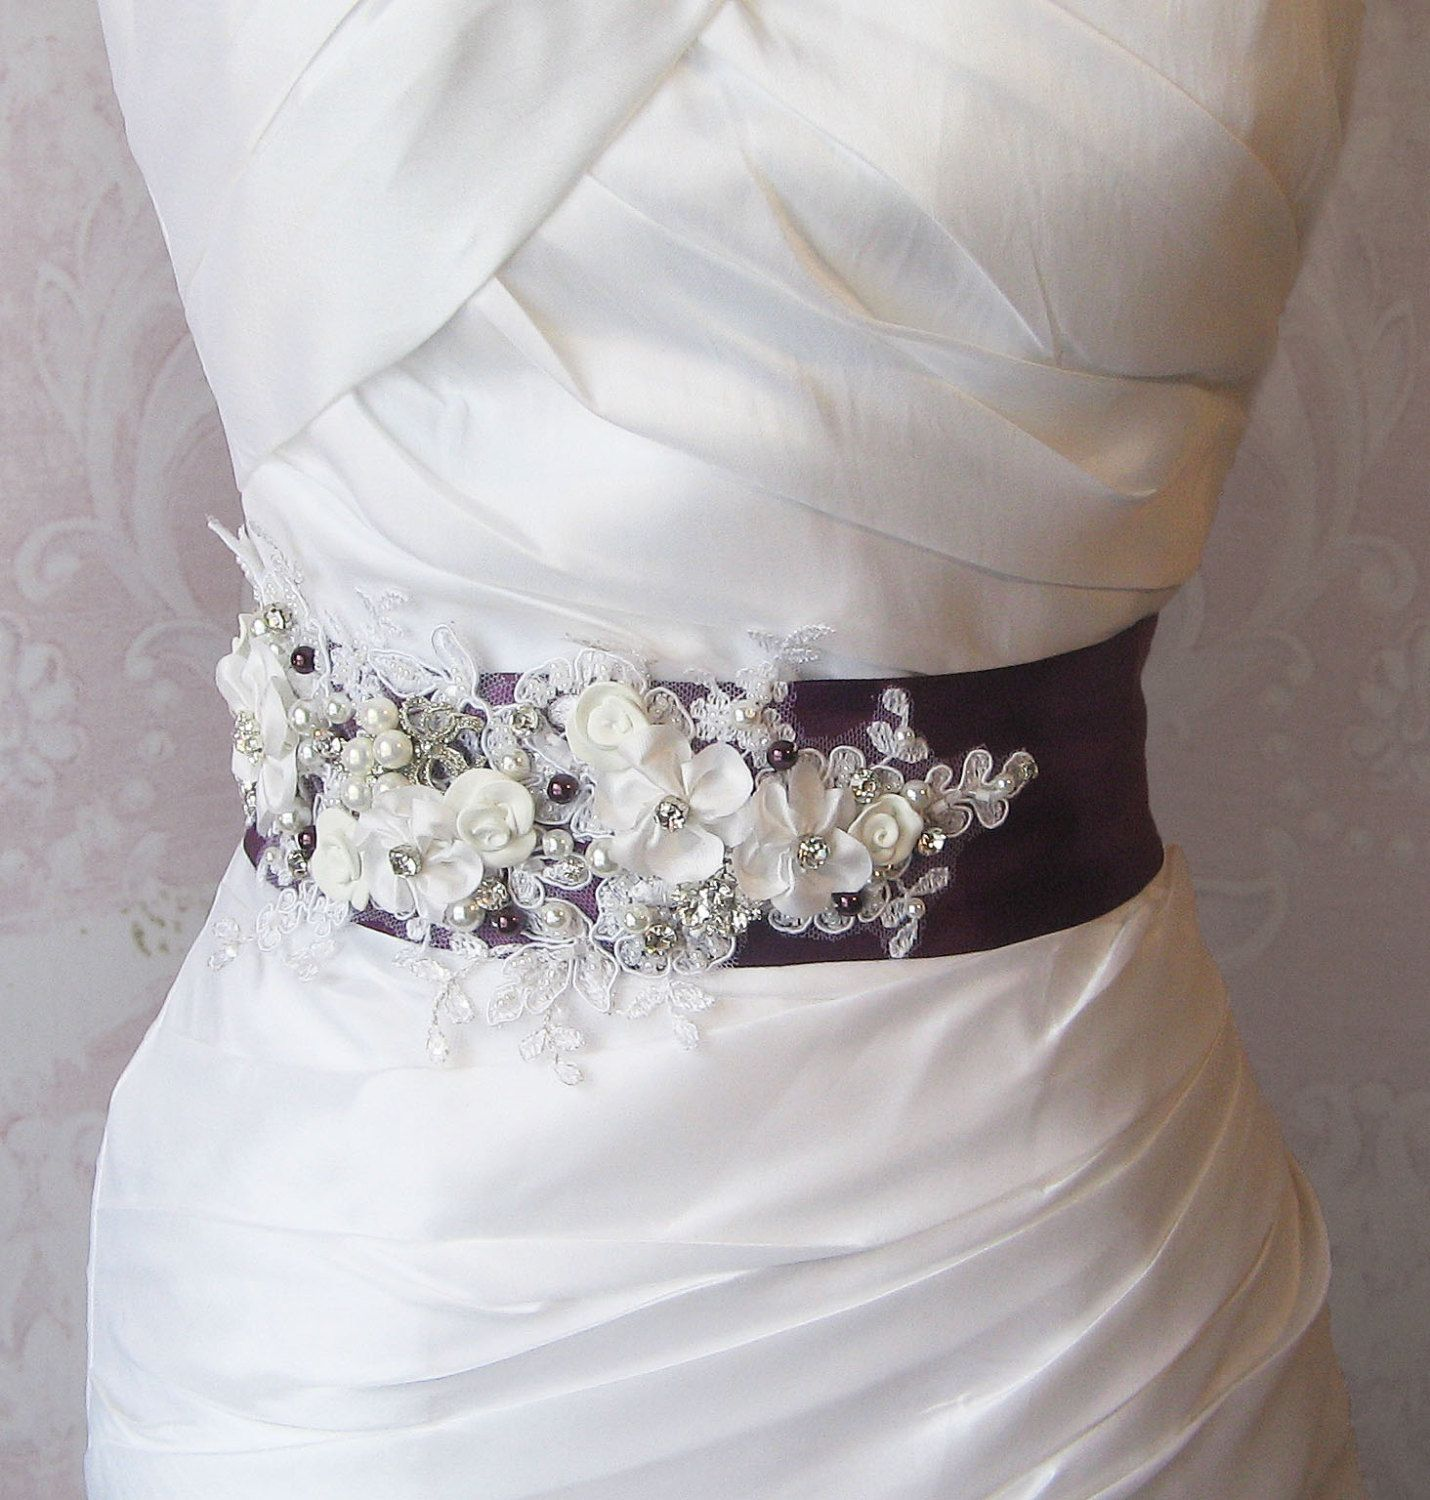 Flower Belts For Wedding Dresses: Eggplant Purple Sash, Deep Plum And White Bridal Sash